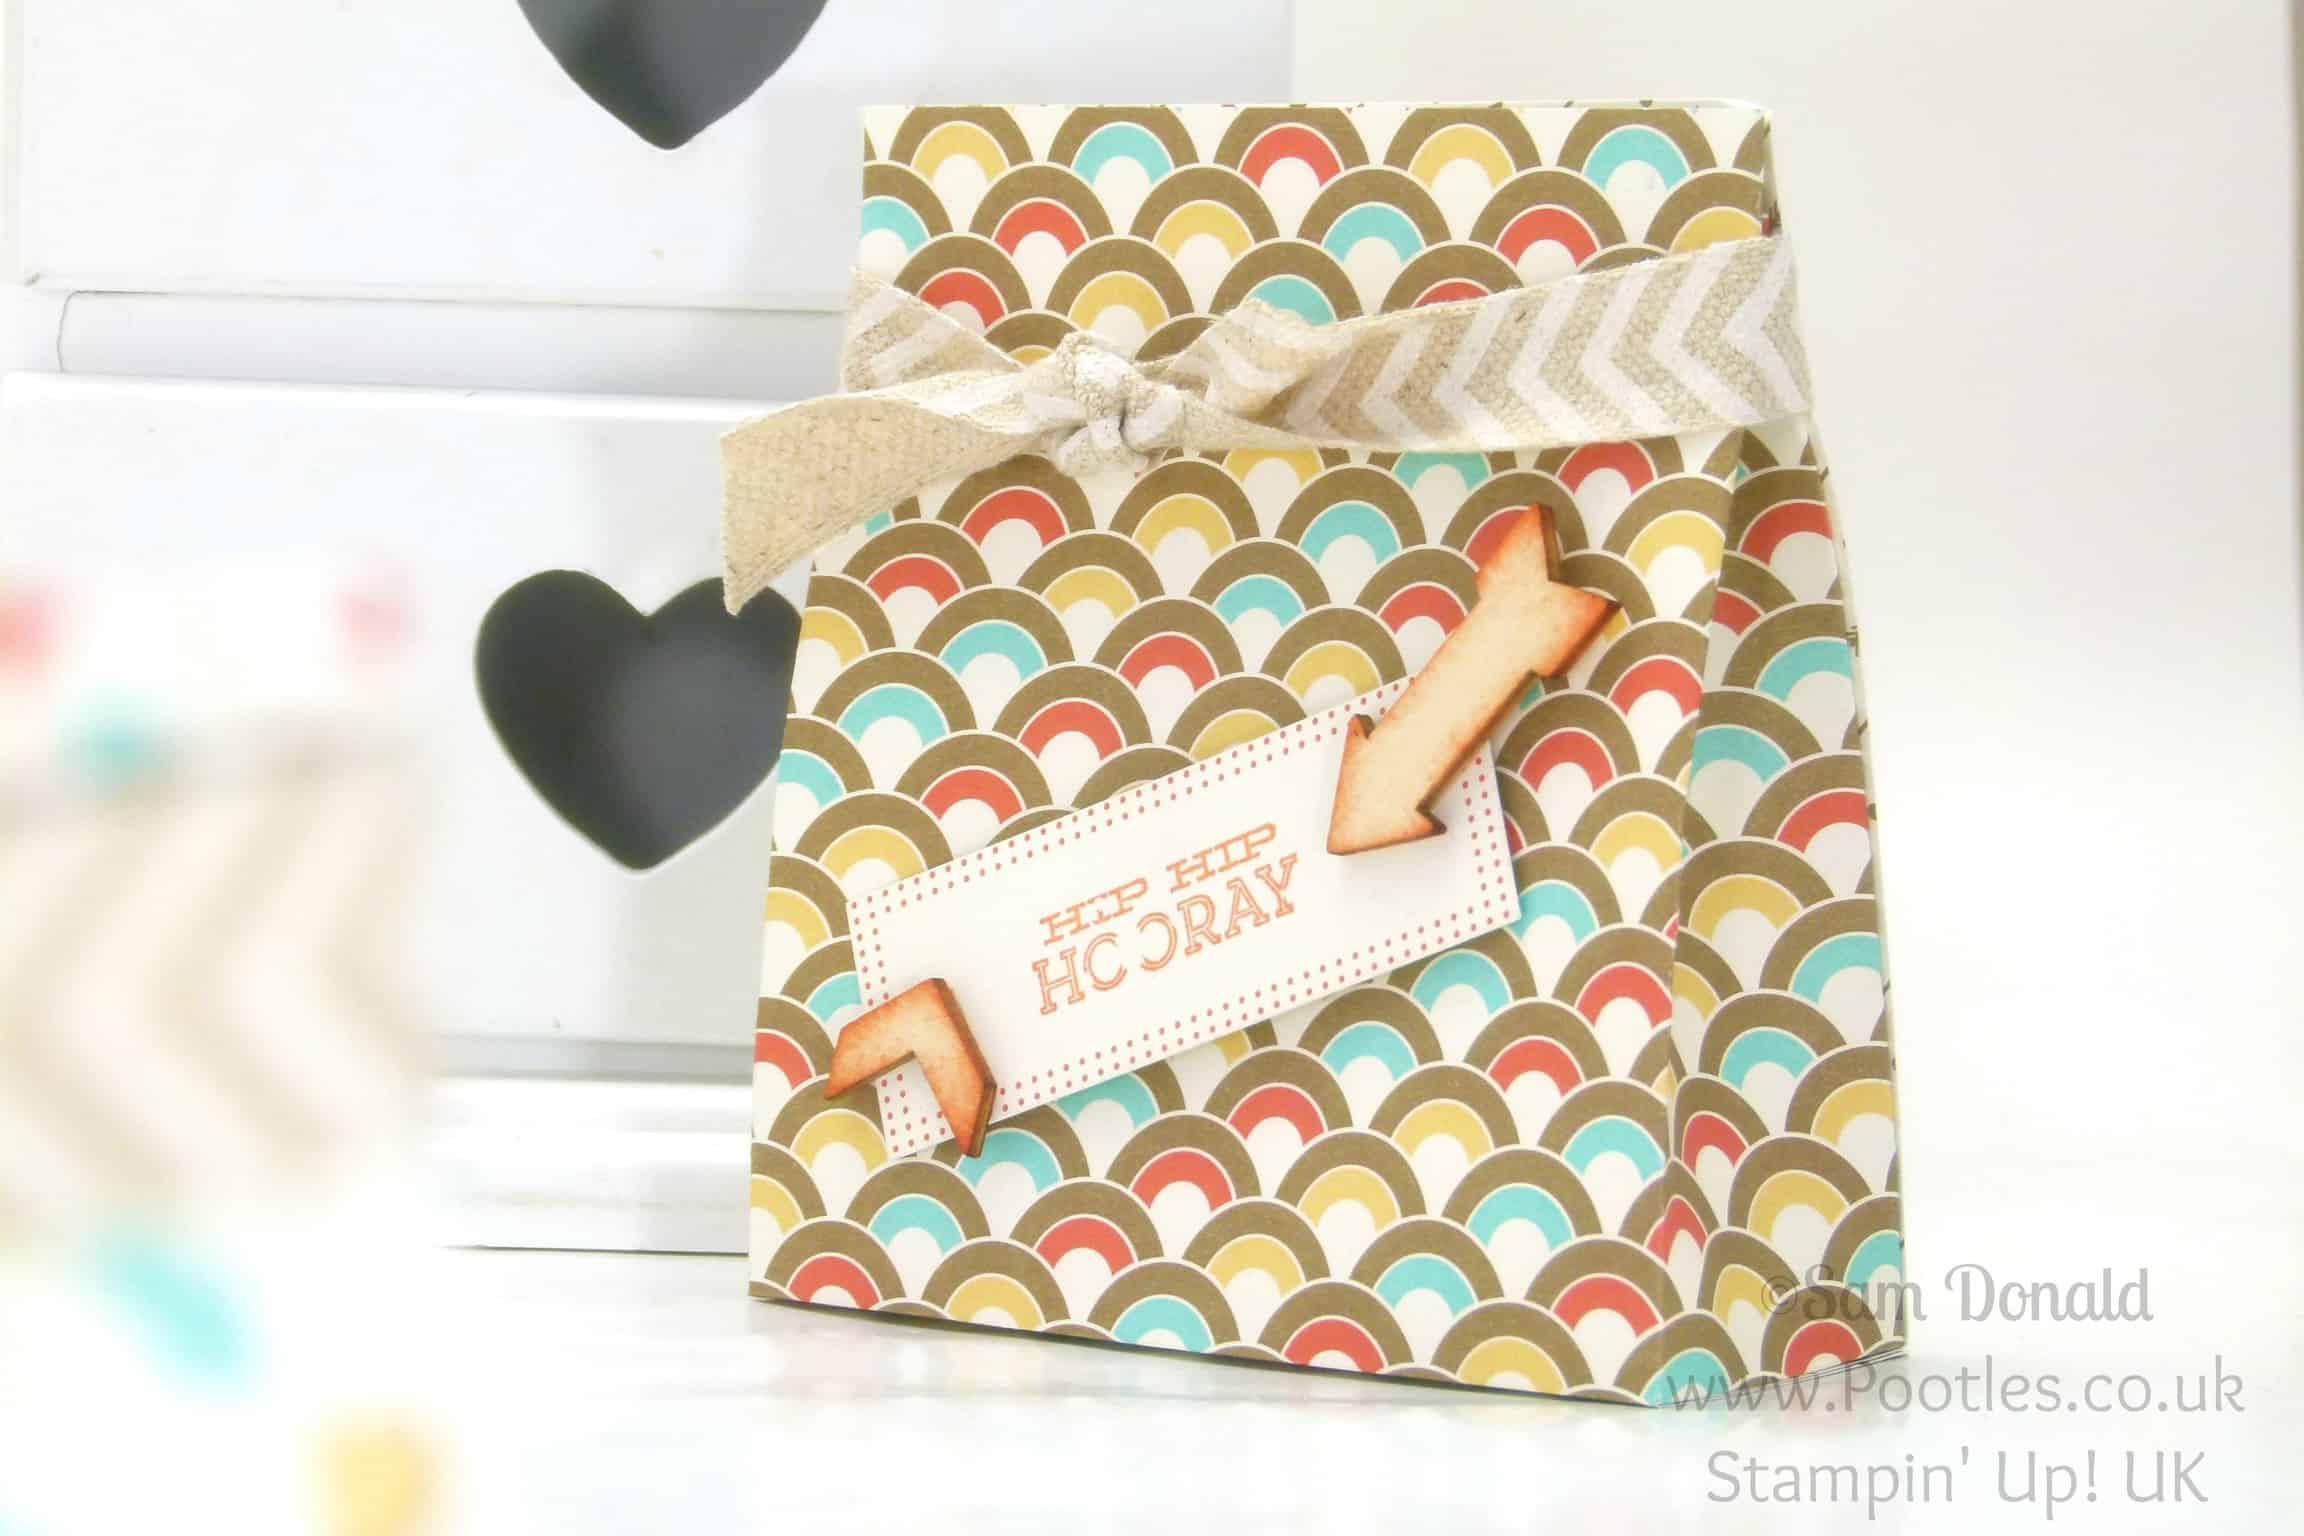 POOTLES Stampin' Up! UK Retro Fresh Bag Tutorial single bag